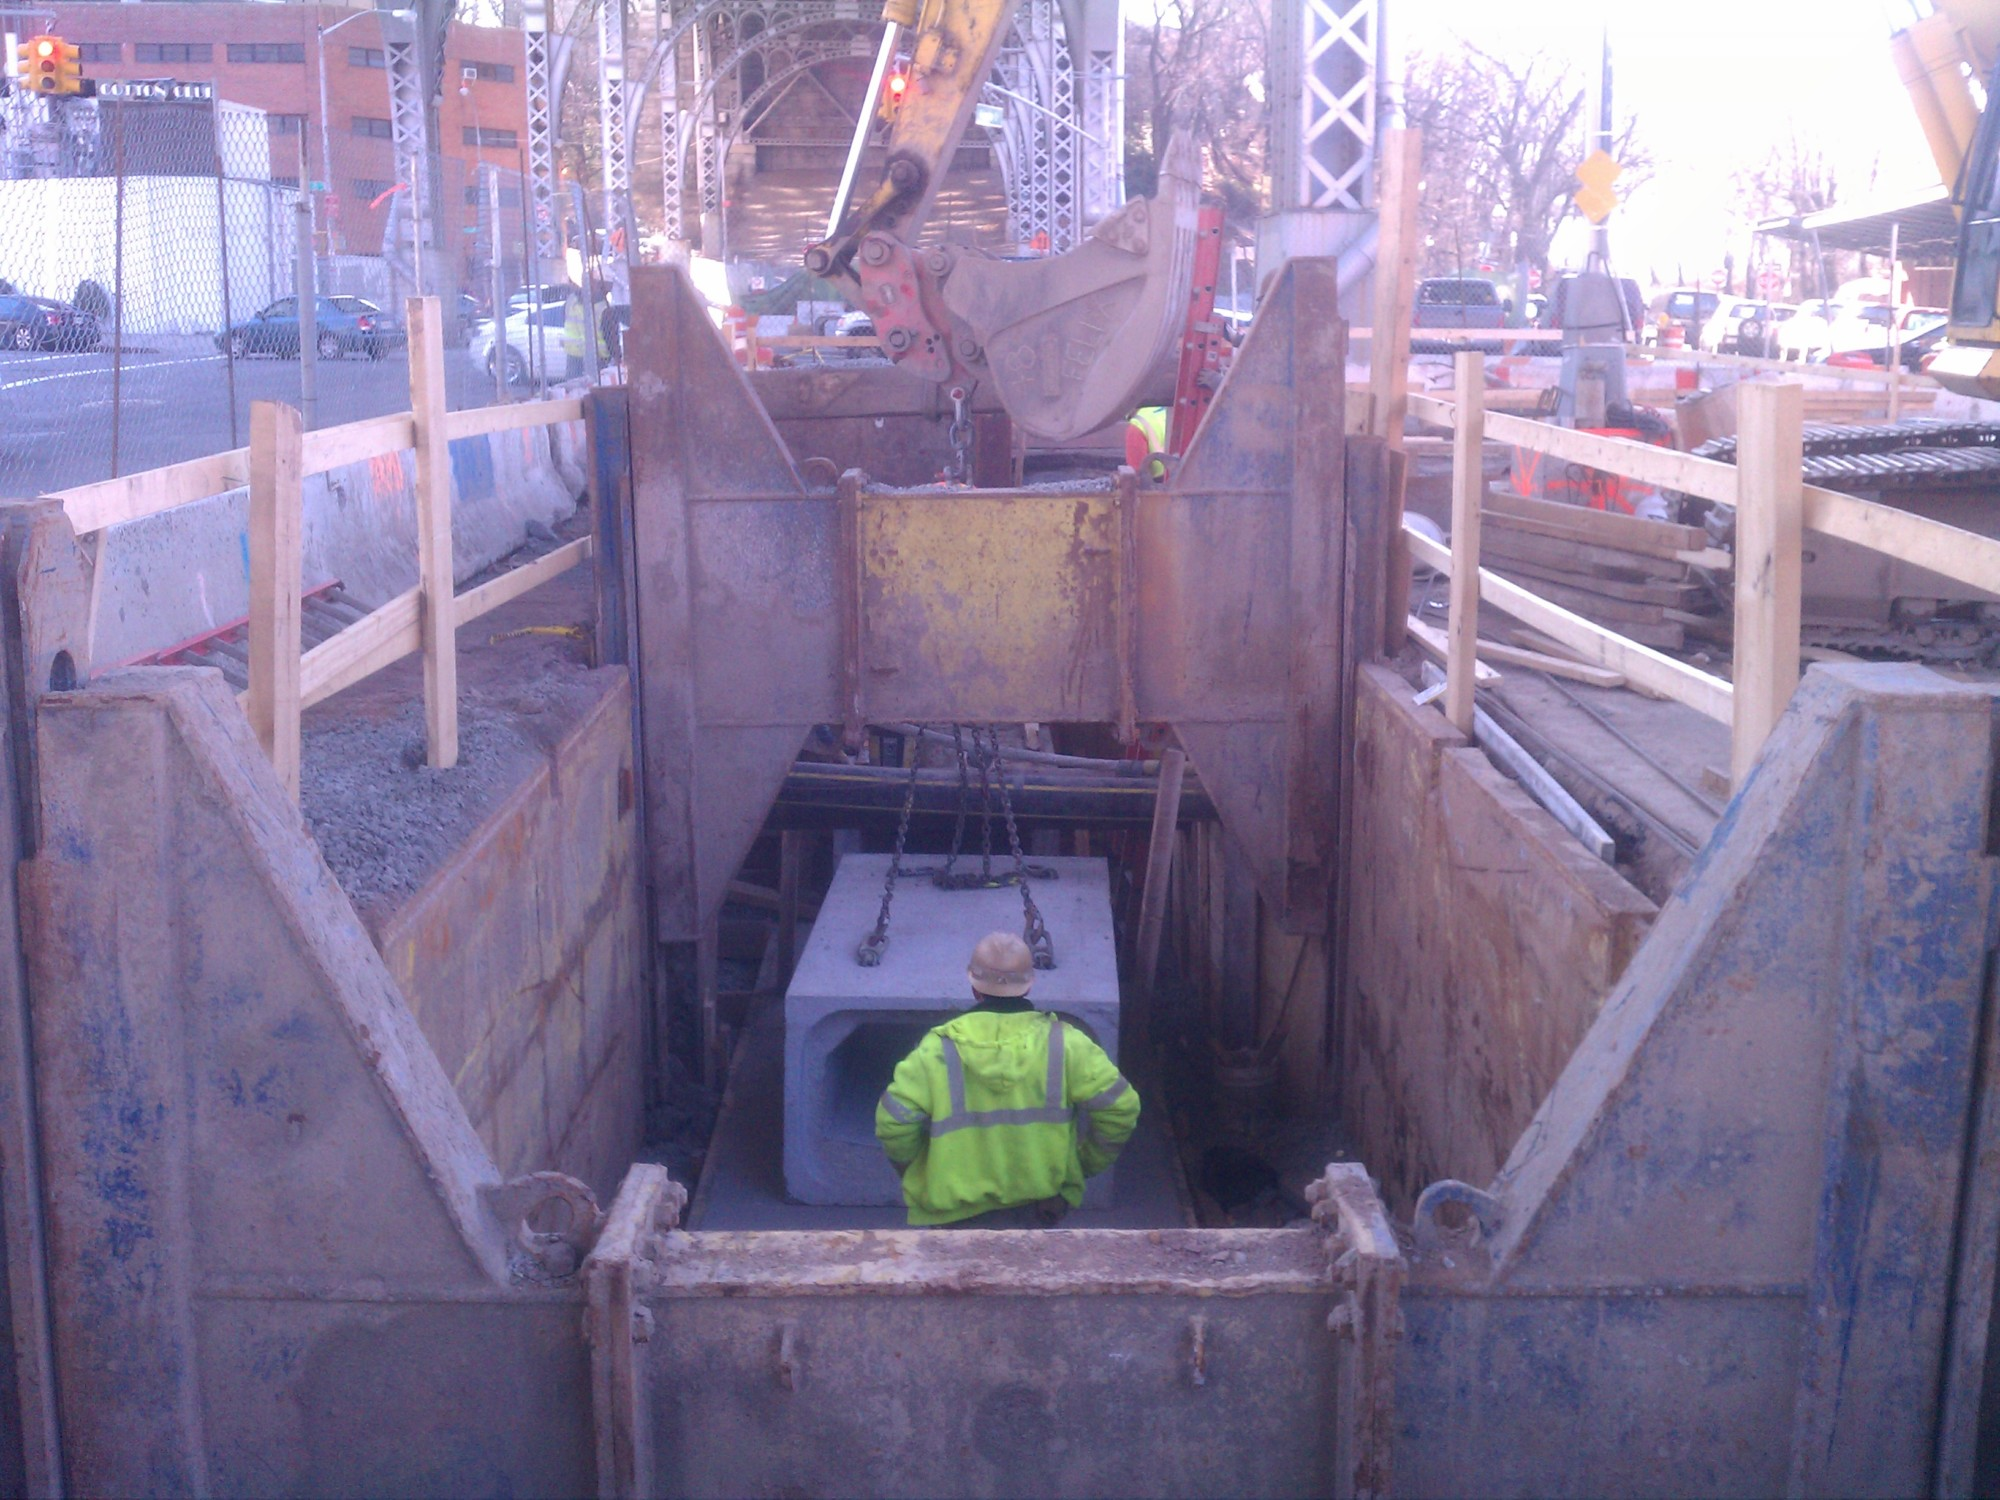 Columbia 12th Ave Sewer 2 -12th Avenue Storm Sewer Project -construction by MFM Contracting Corp New York